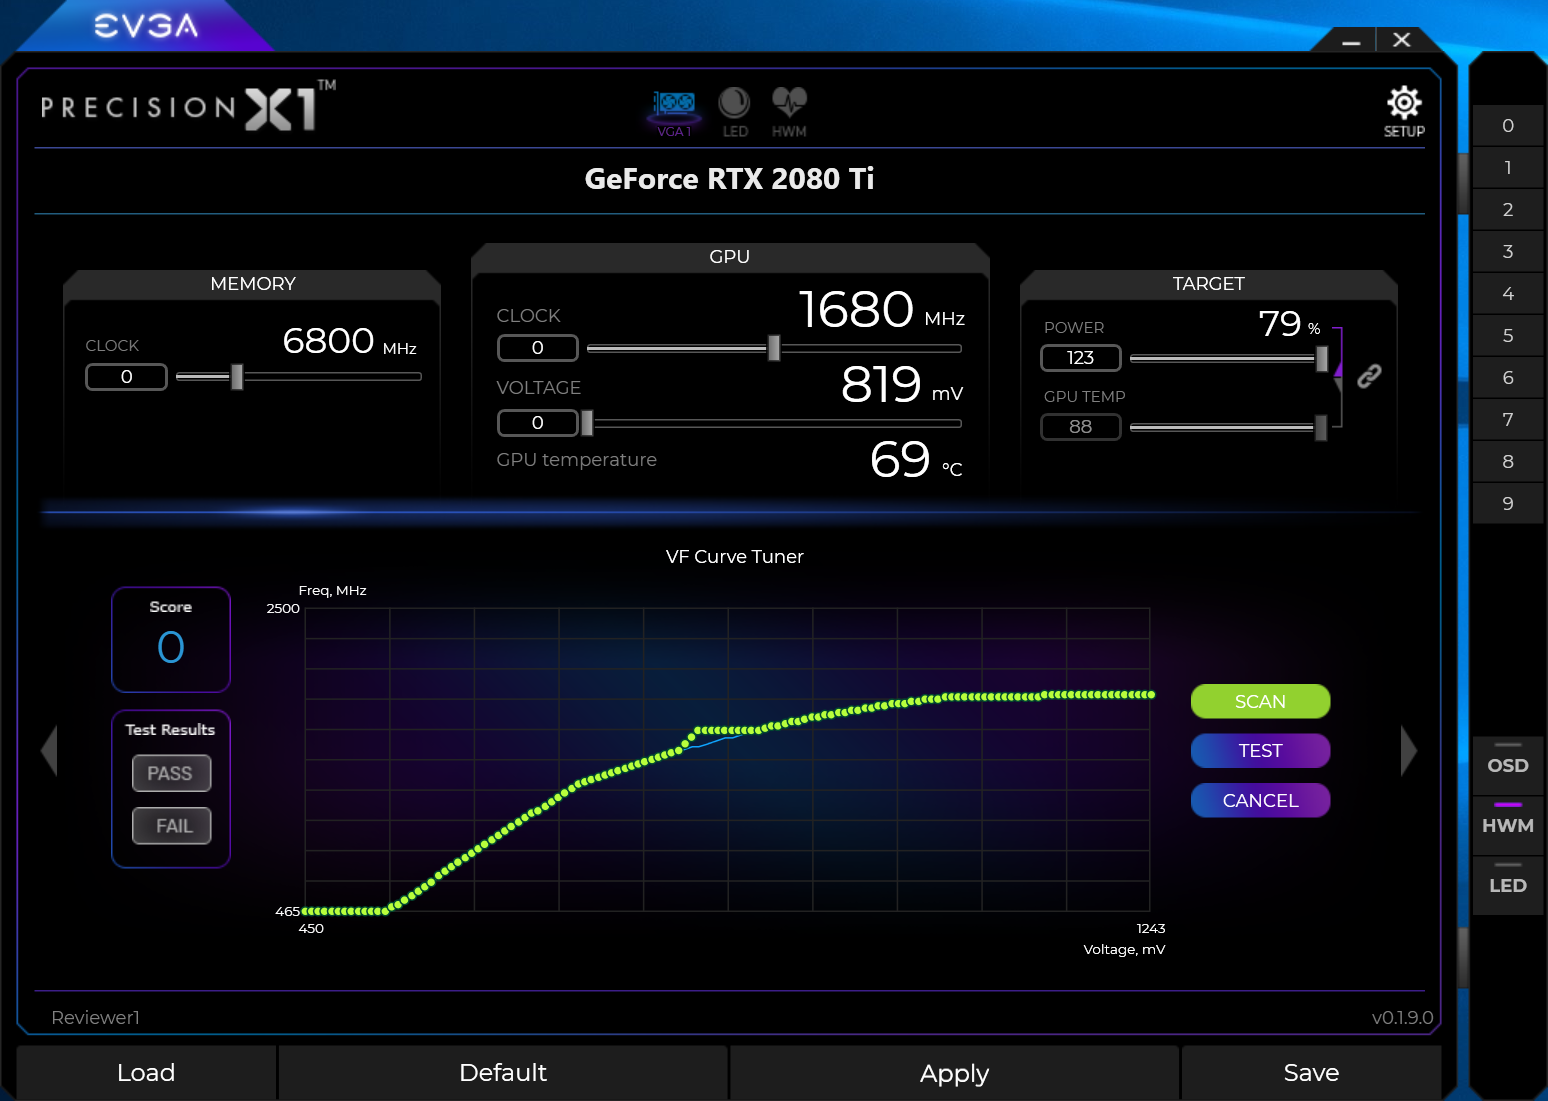 Nvidia GeForce RTX 2080 Ti and RTX 2080 Founders Edition